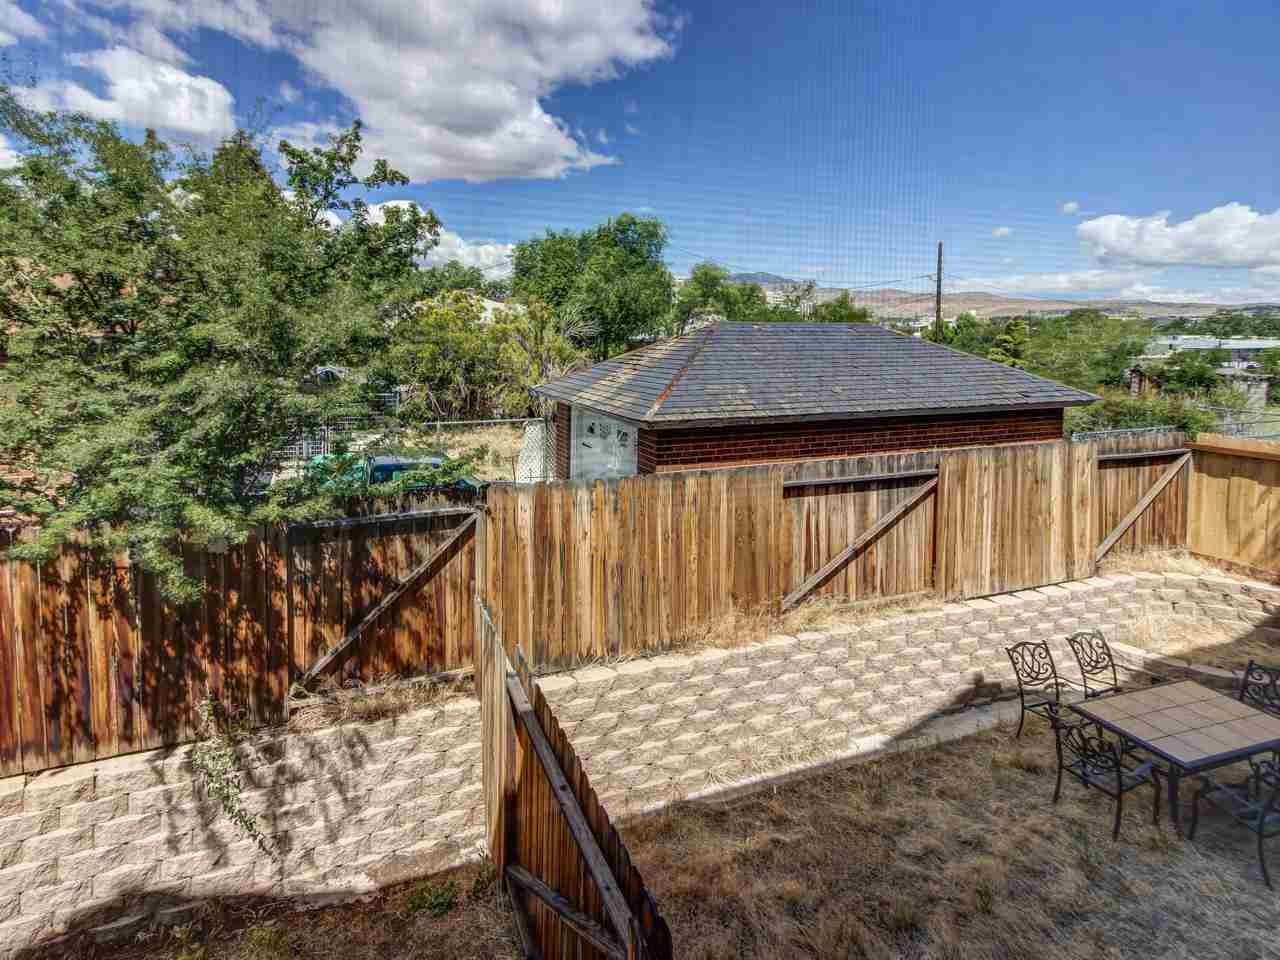 Additional photo for property listing at 781,783,785 Streetewart Street Reno, Nevada 89502 United States